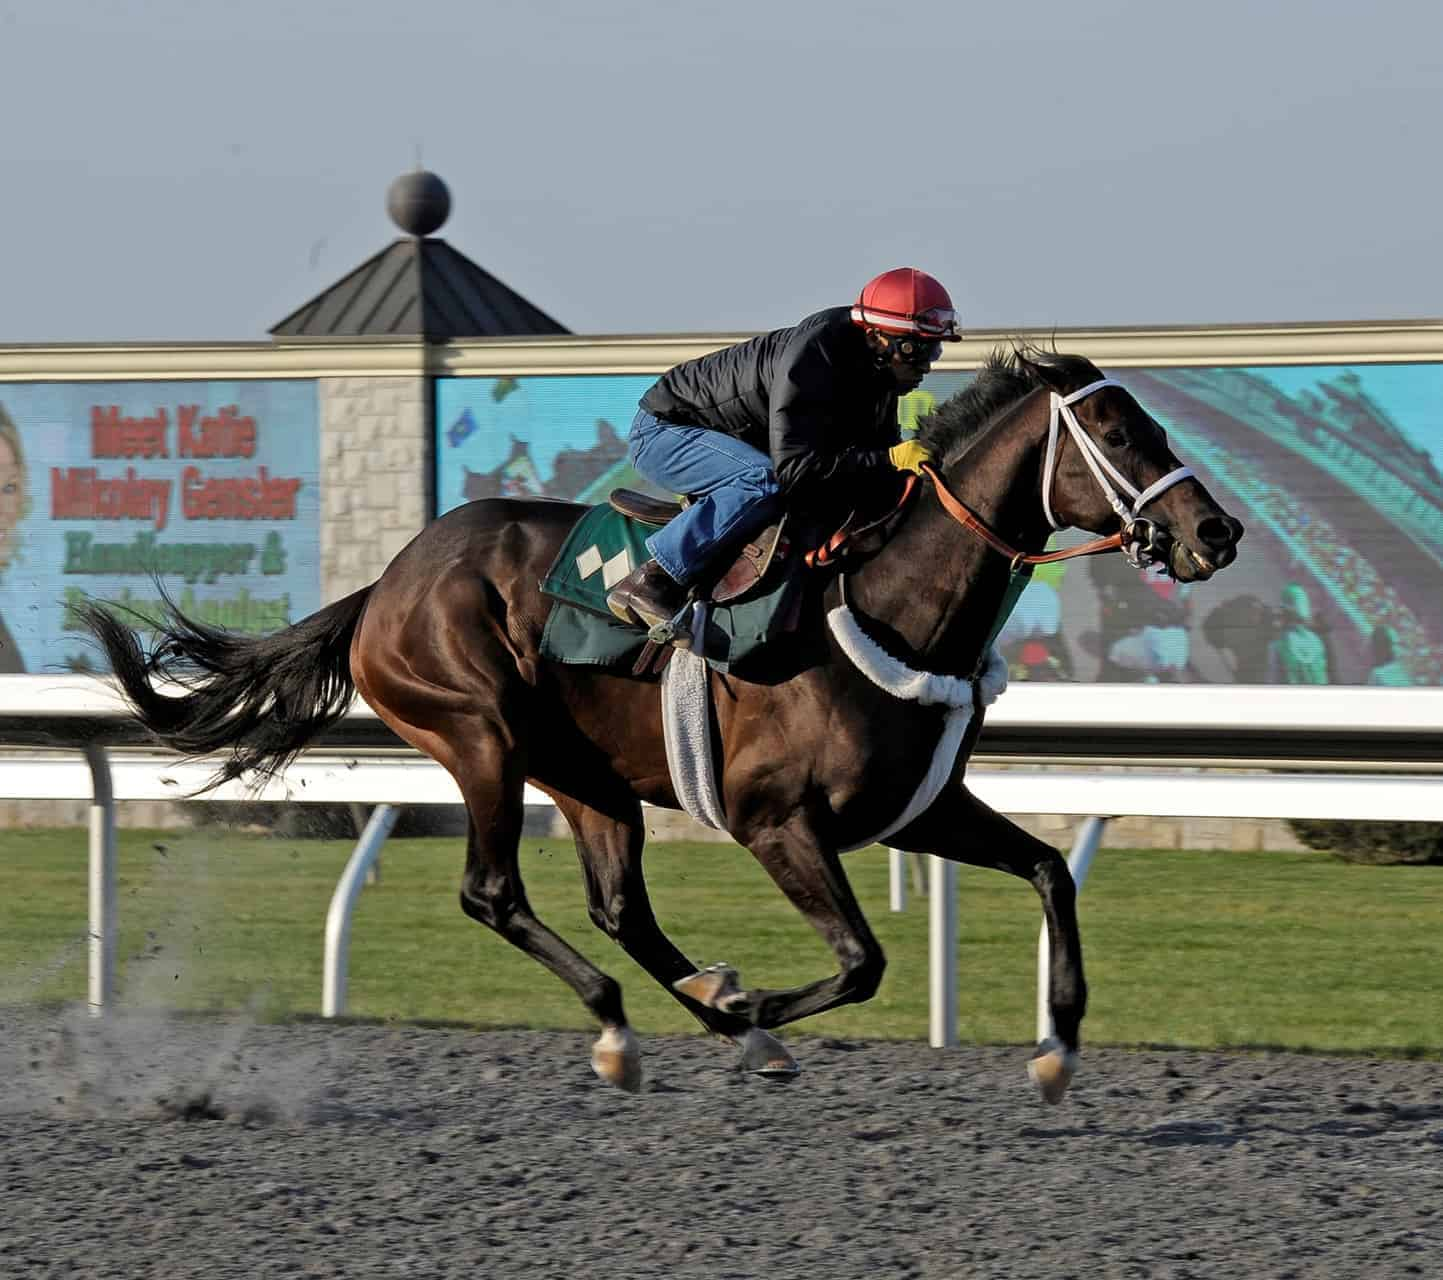 'Roarers': Surprise Results for Horses Racing Post-Surgery